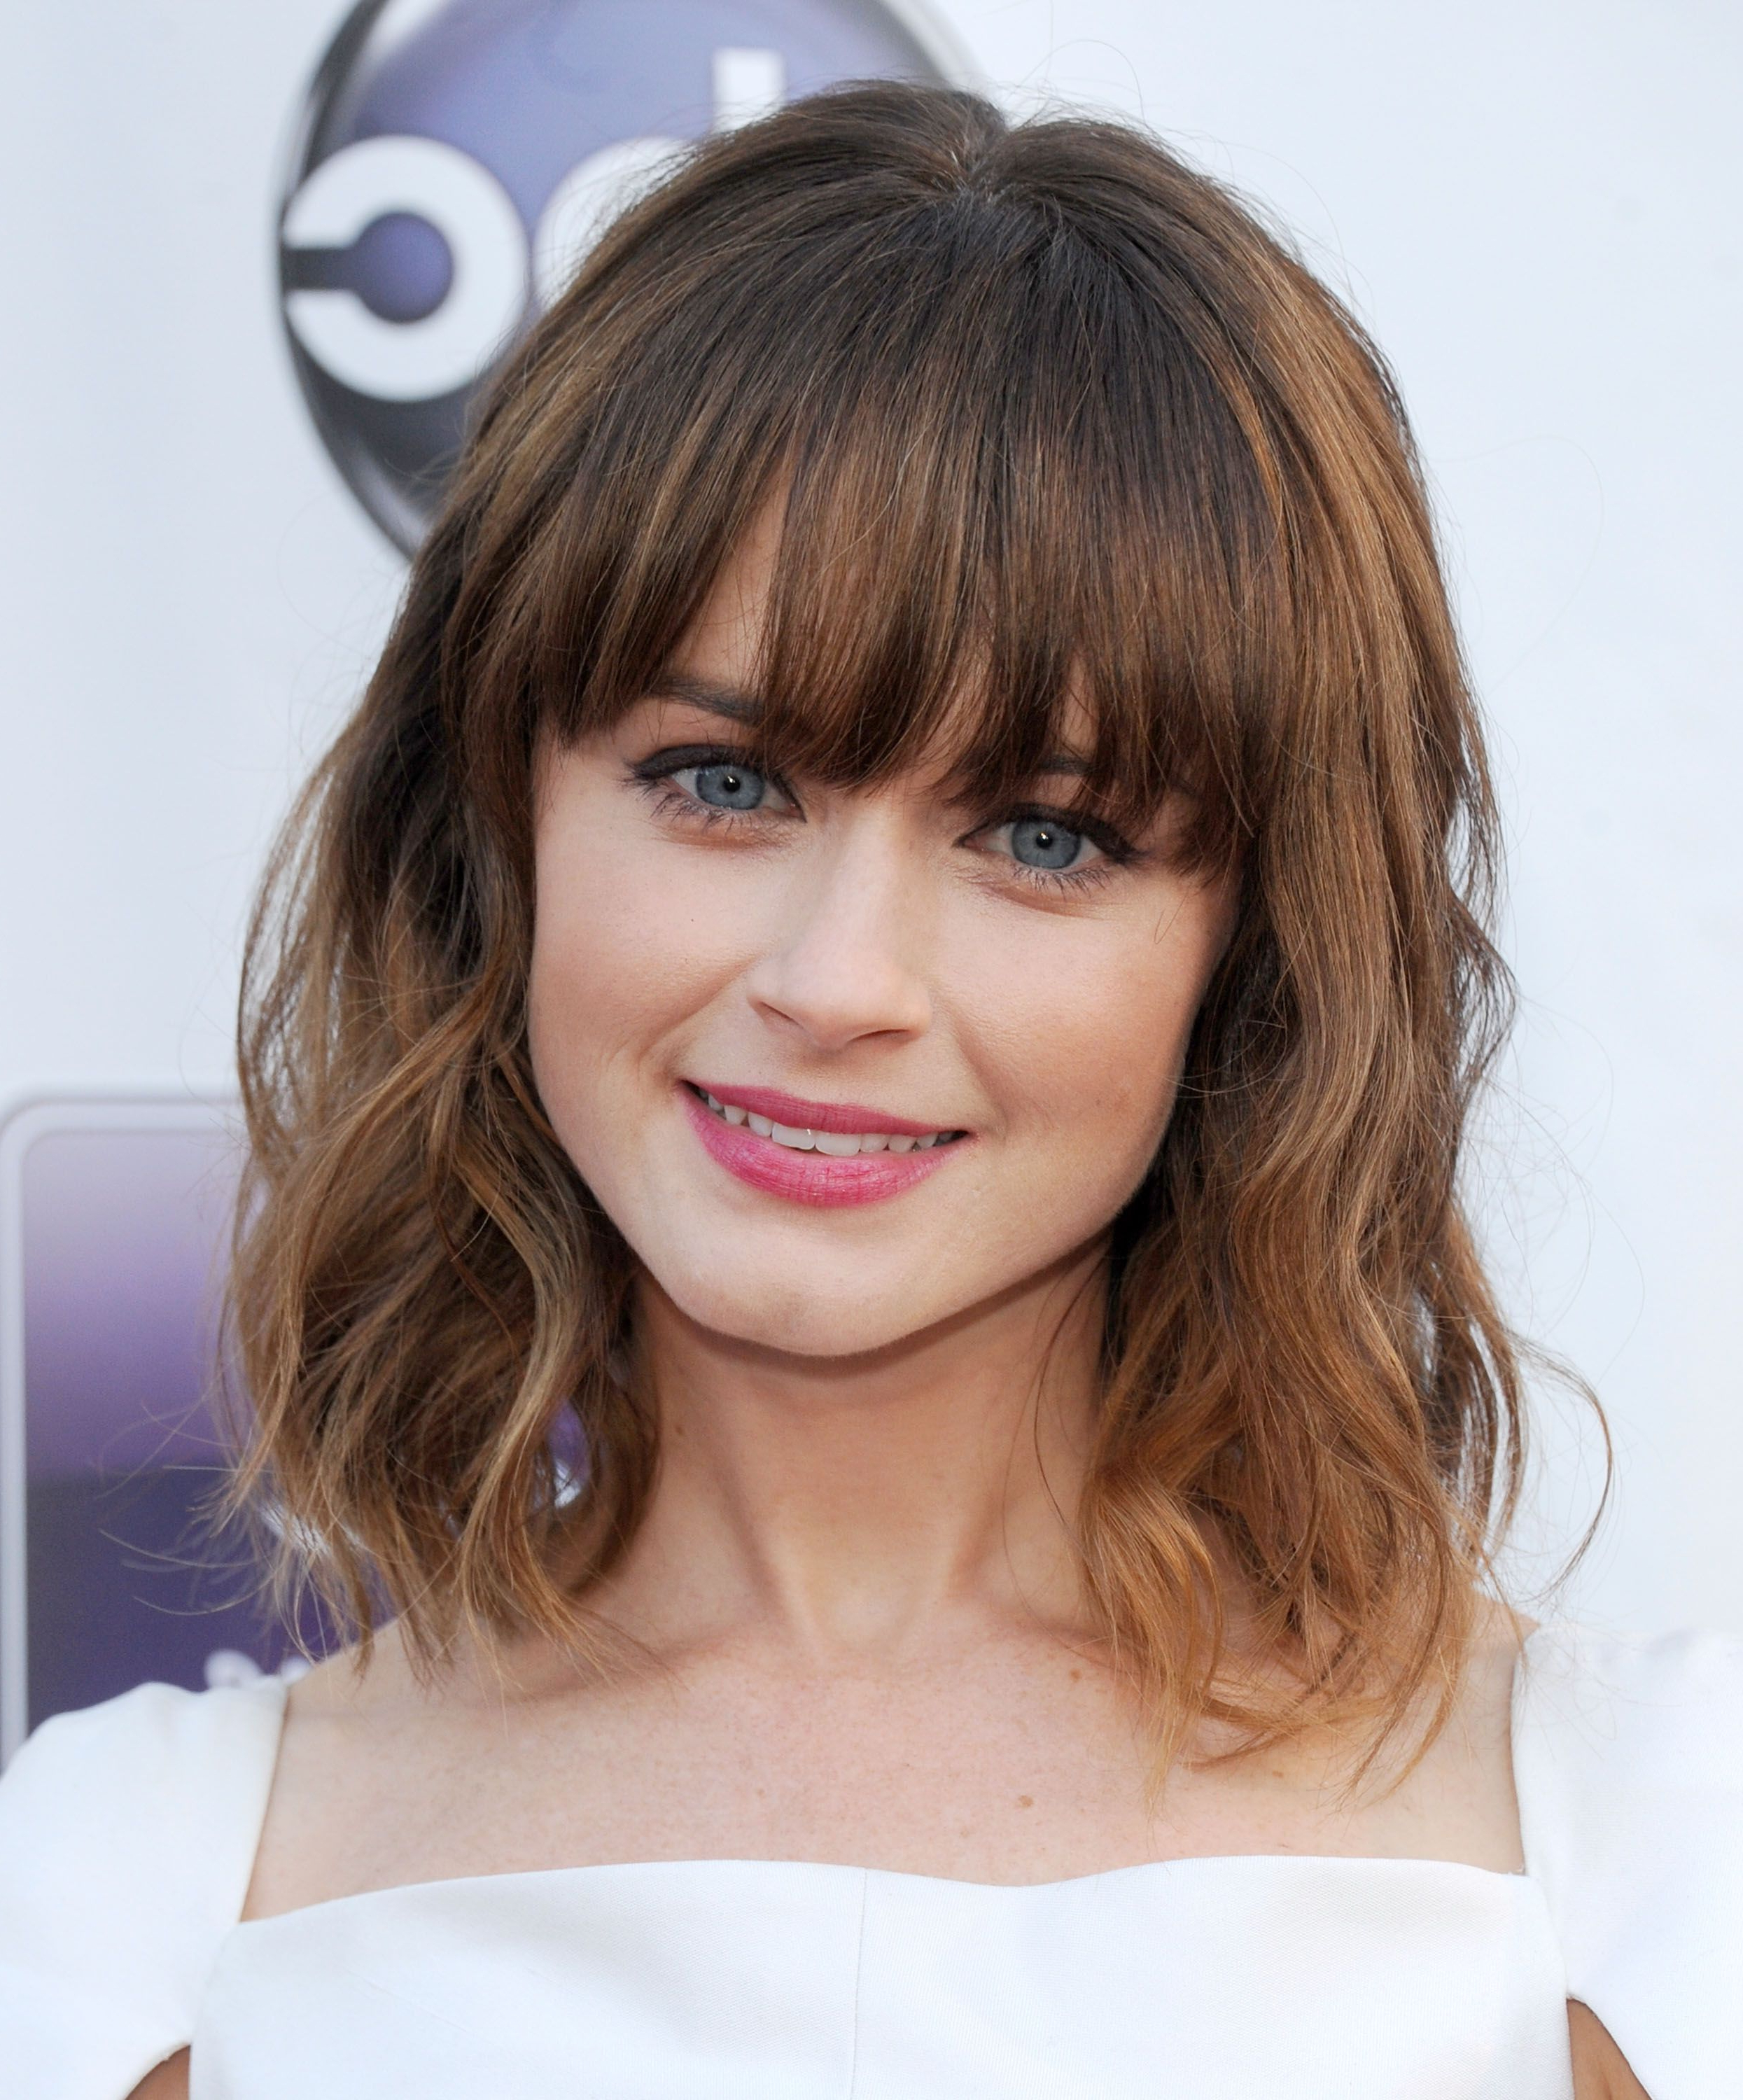 Well Known Stylish Updos With Puffy Crown And Bangs Regarding 35 Best Hairstyles With Bangs – Photos Of Celebrity Haircuts (Gallery 6 of 20)